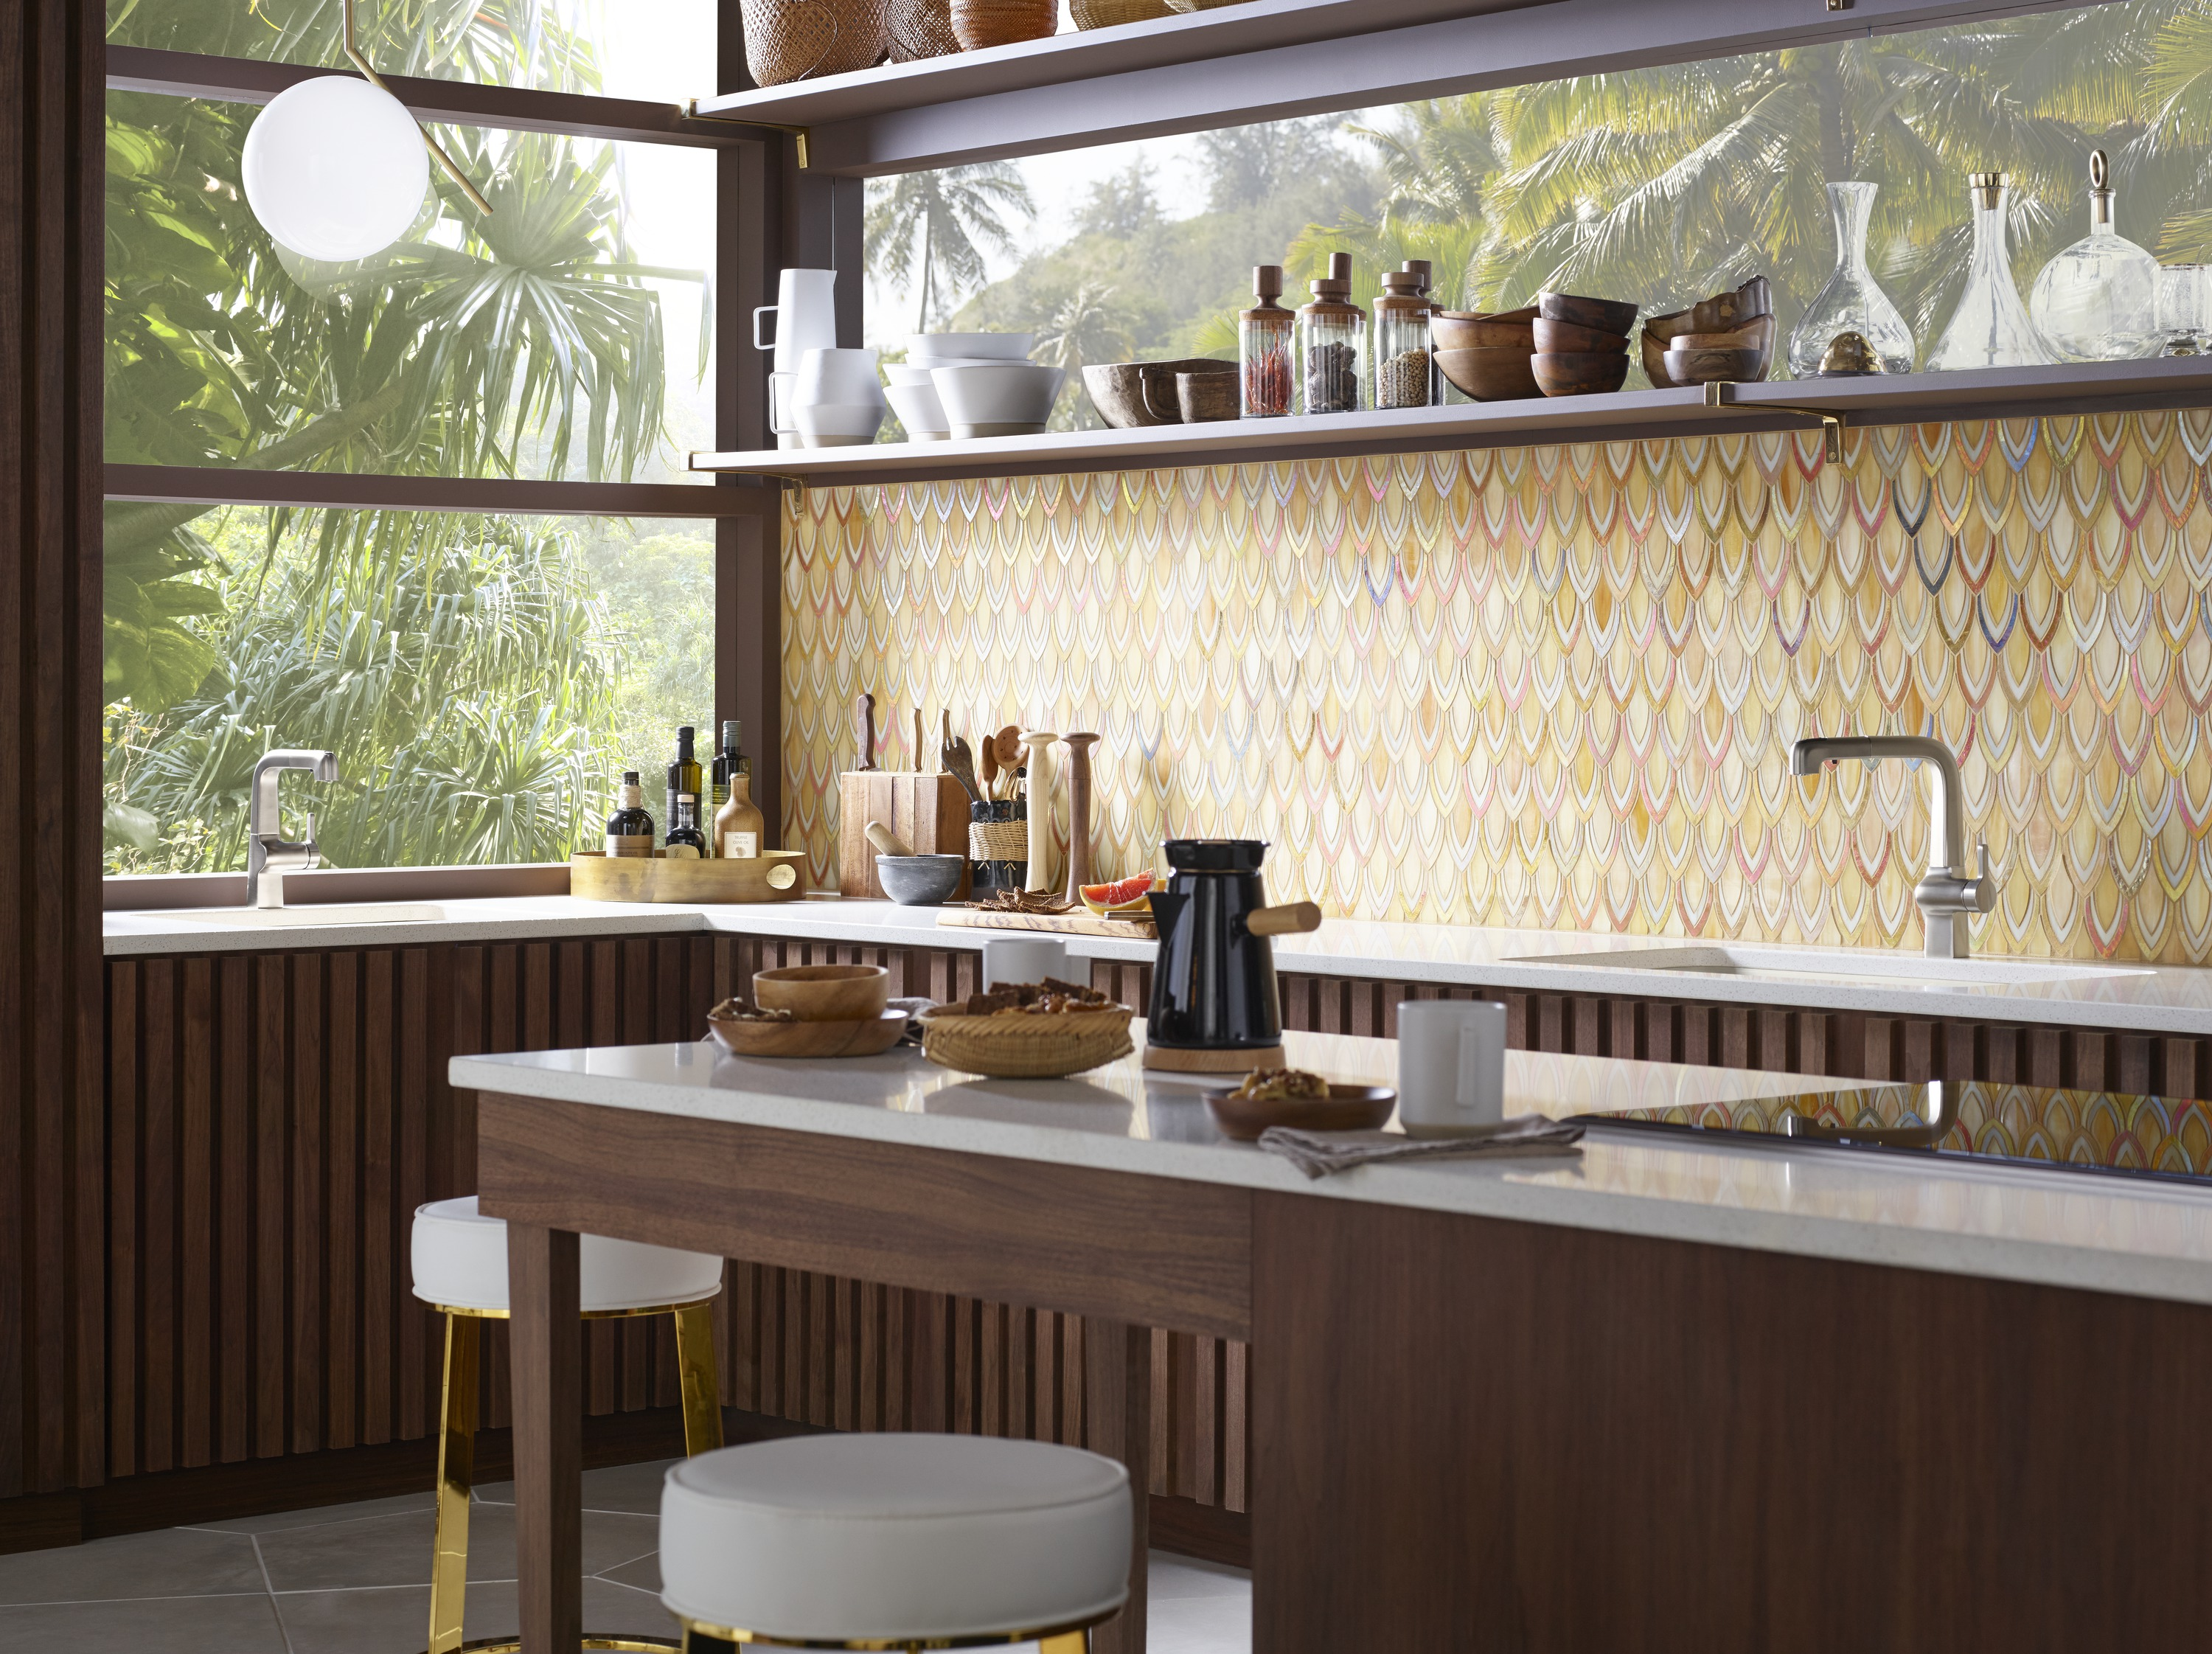 Evoke® pullout faucet     Evoke bar sink faucet     Riverby® under-mount sink     ANN SACKS® Chrysalis mosaics tile     Brazilian minimalism is hot right now. Bringing together the natural warmth of wood and exuberant tile patterns, it's modern made lively.